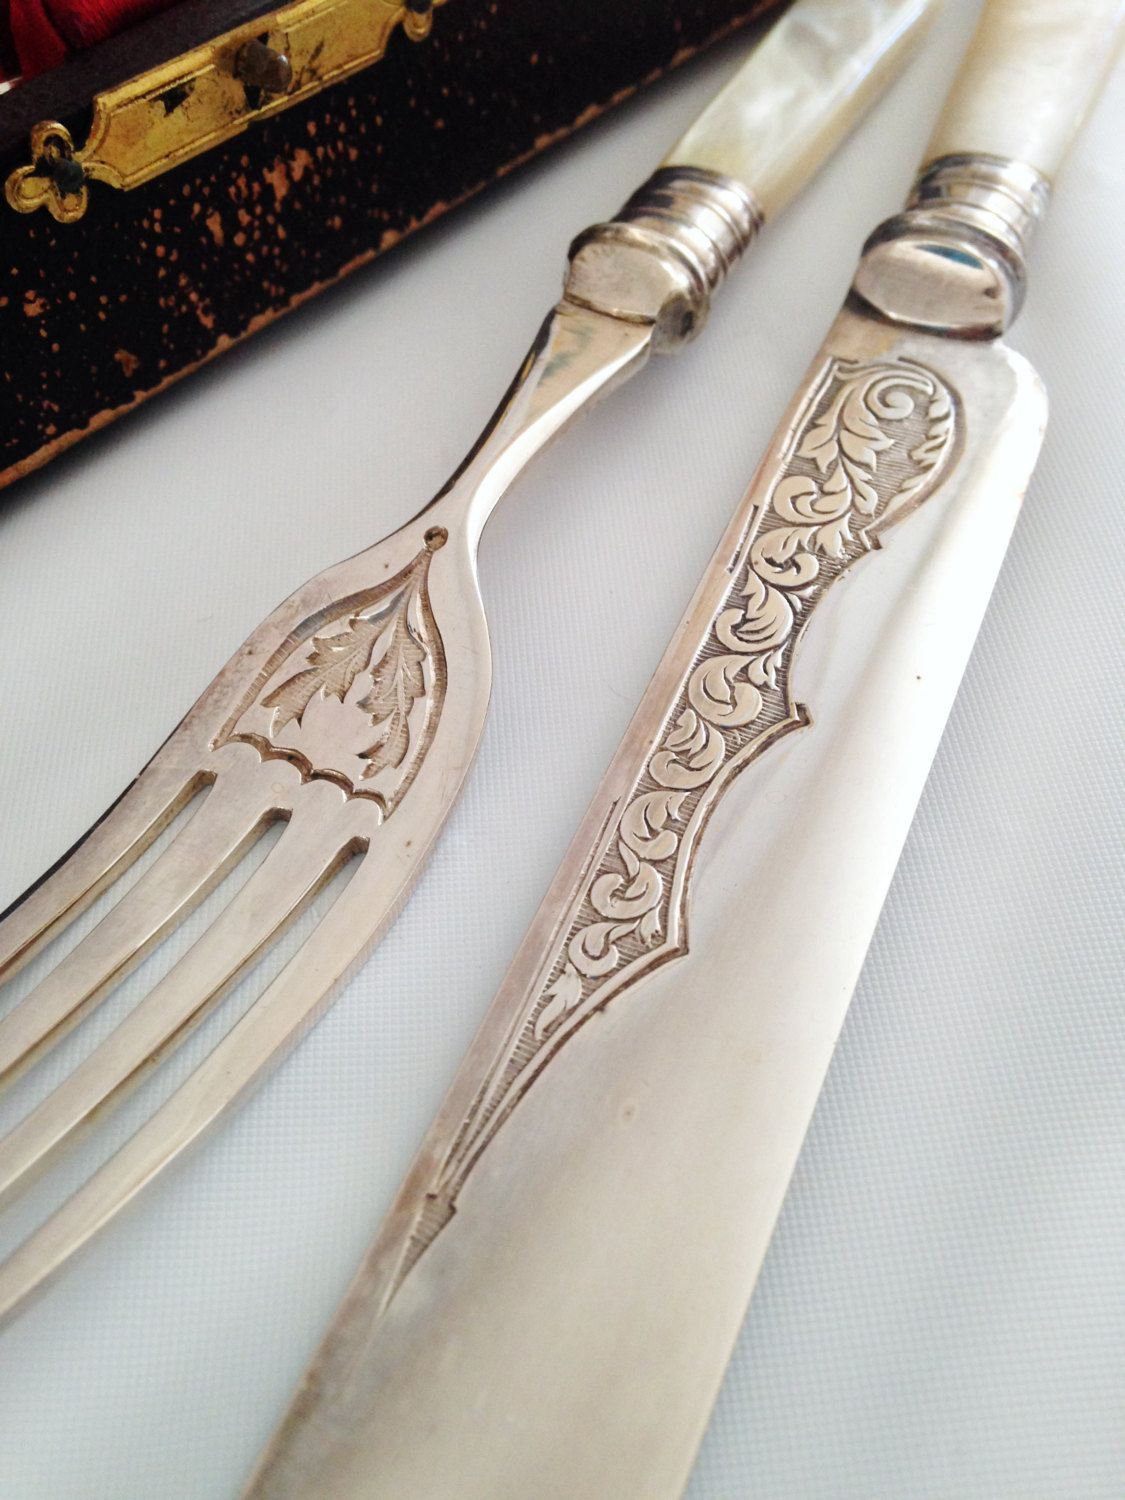 exquisite mother of pearl and silver knives and forks early exquisite mother of pearl and silver knives and forks early 1900 s original case english set of twelve great gift